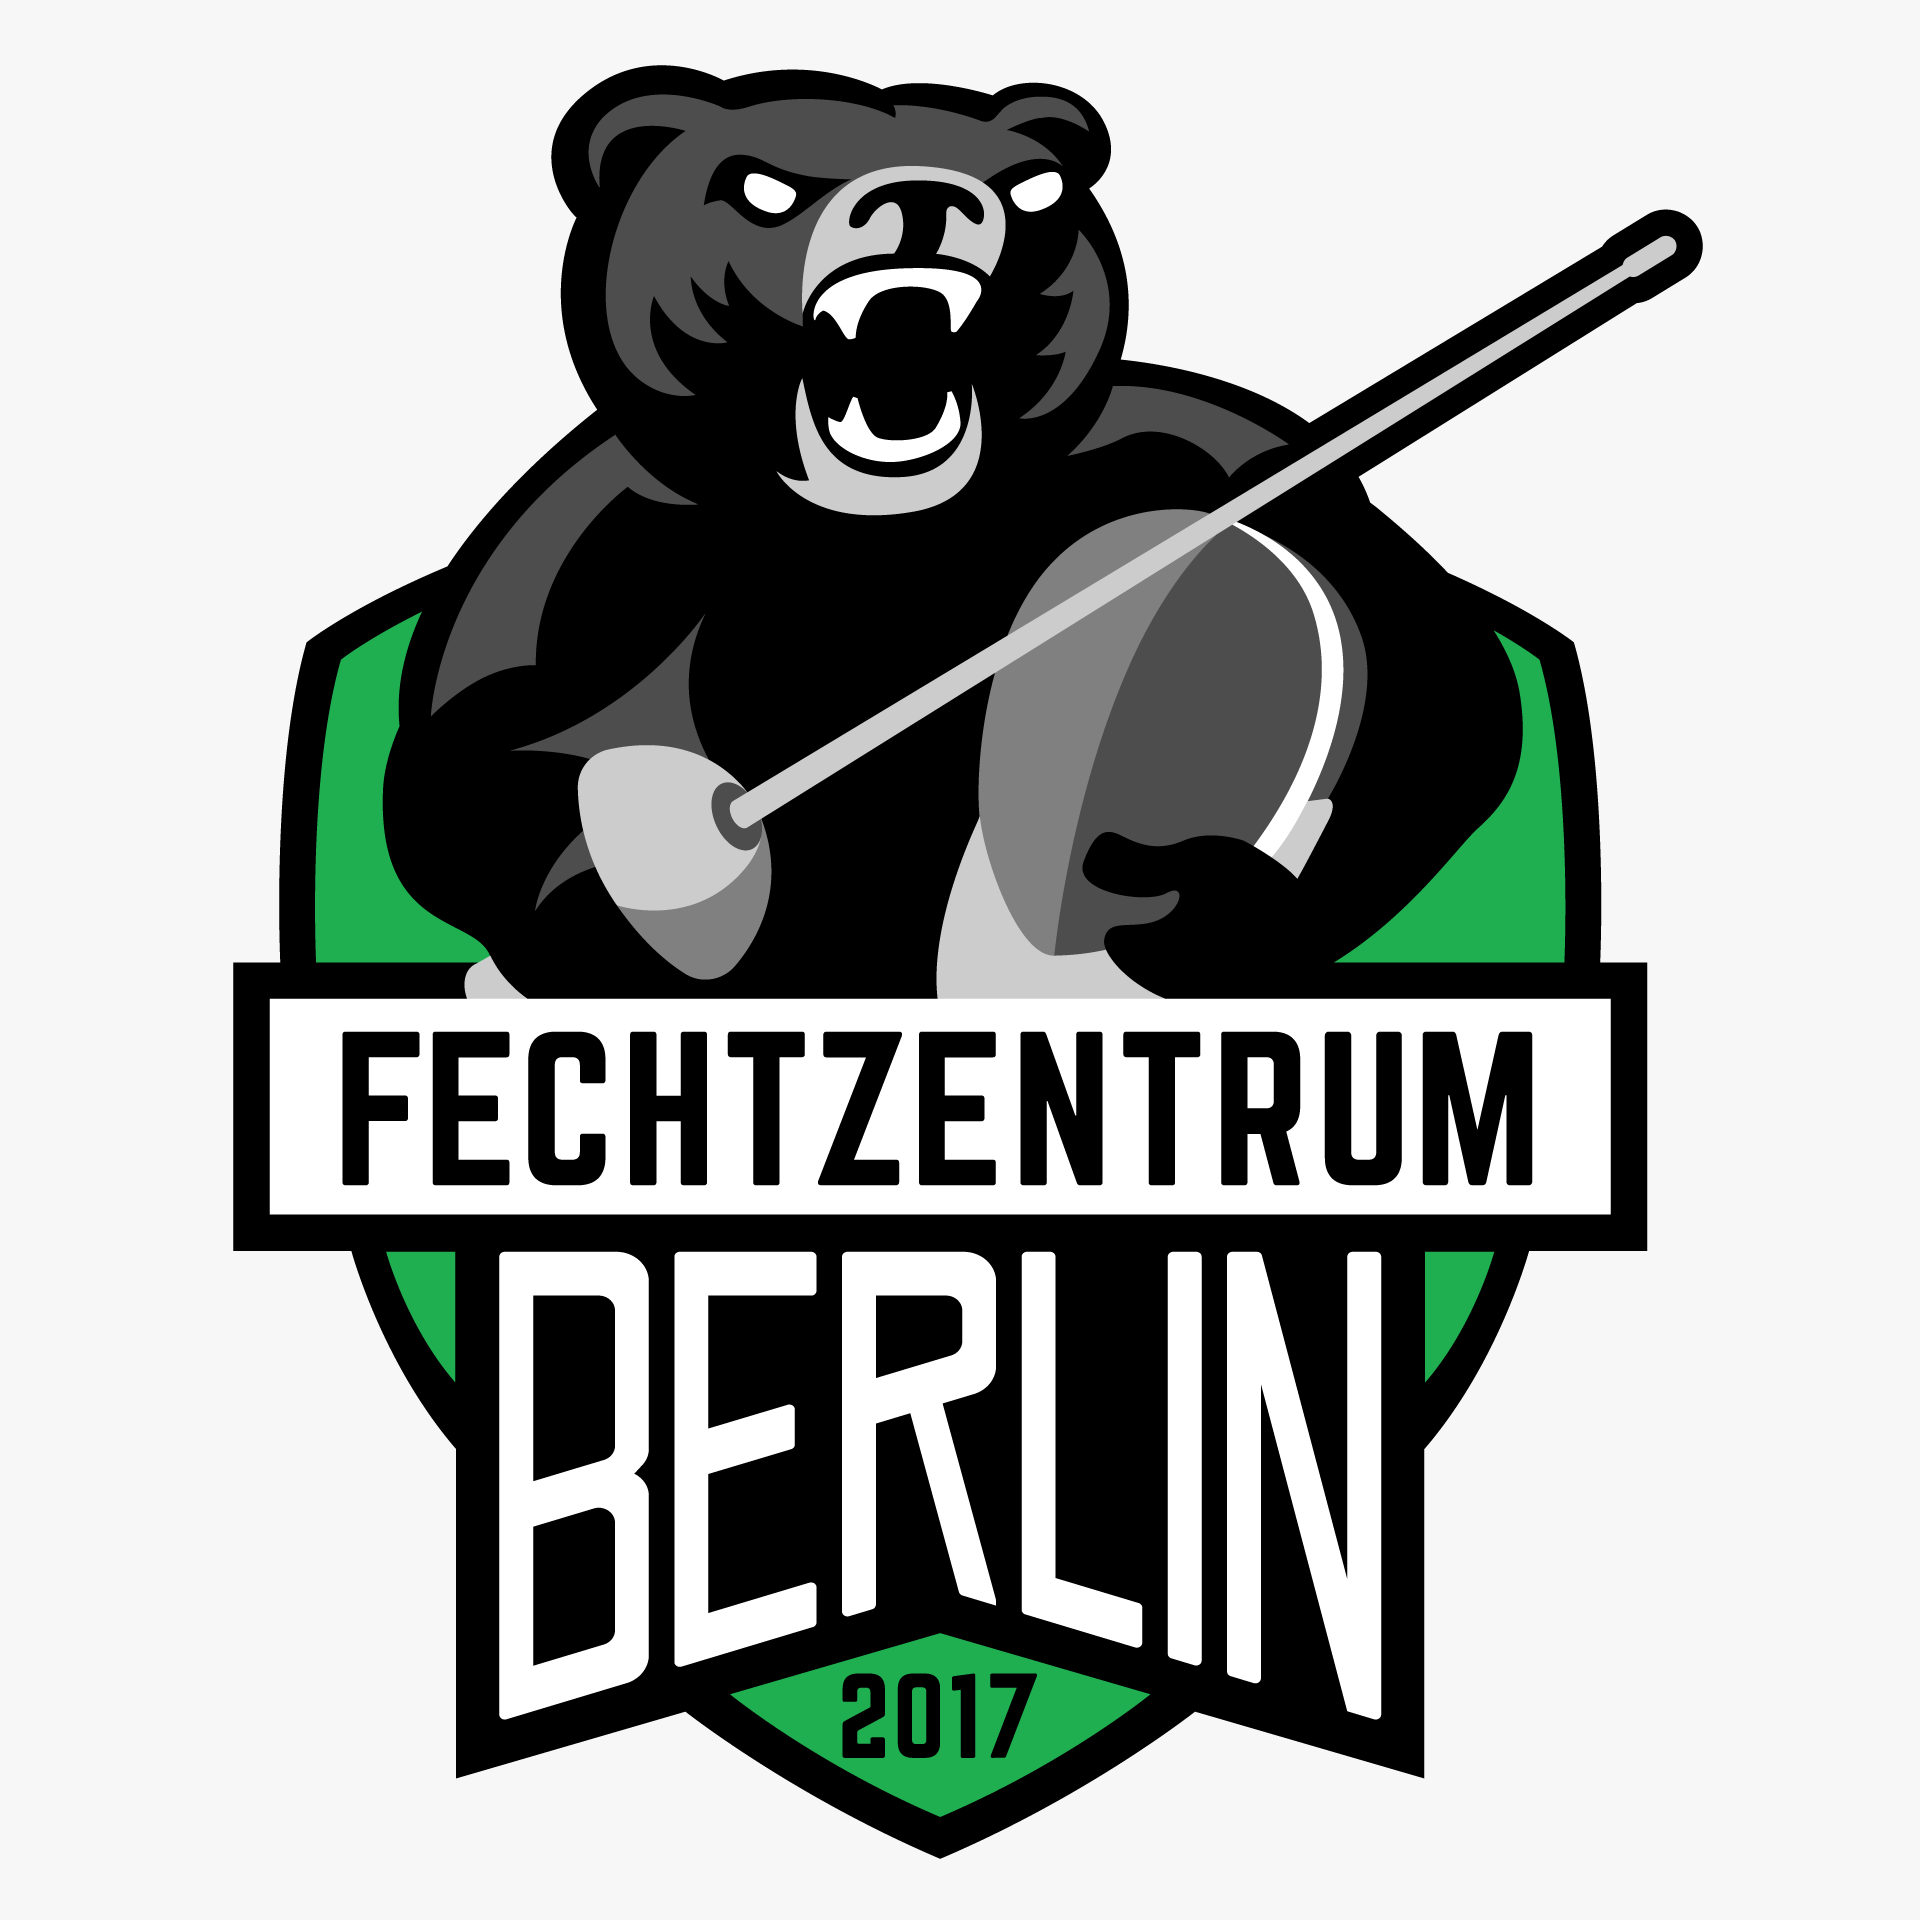 logo-fencing-bear-fzb-berlin